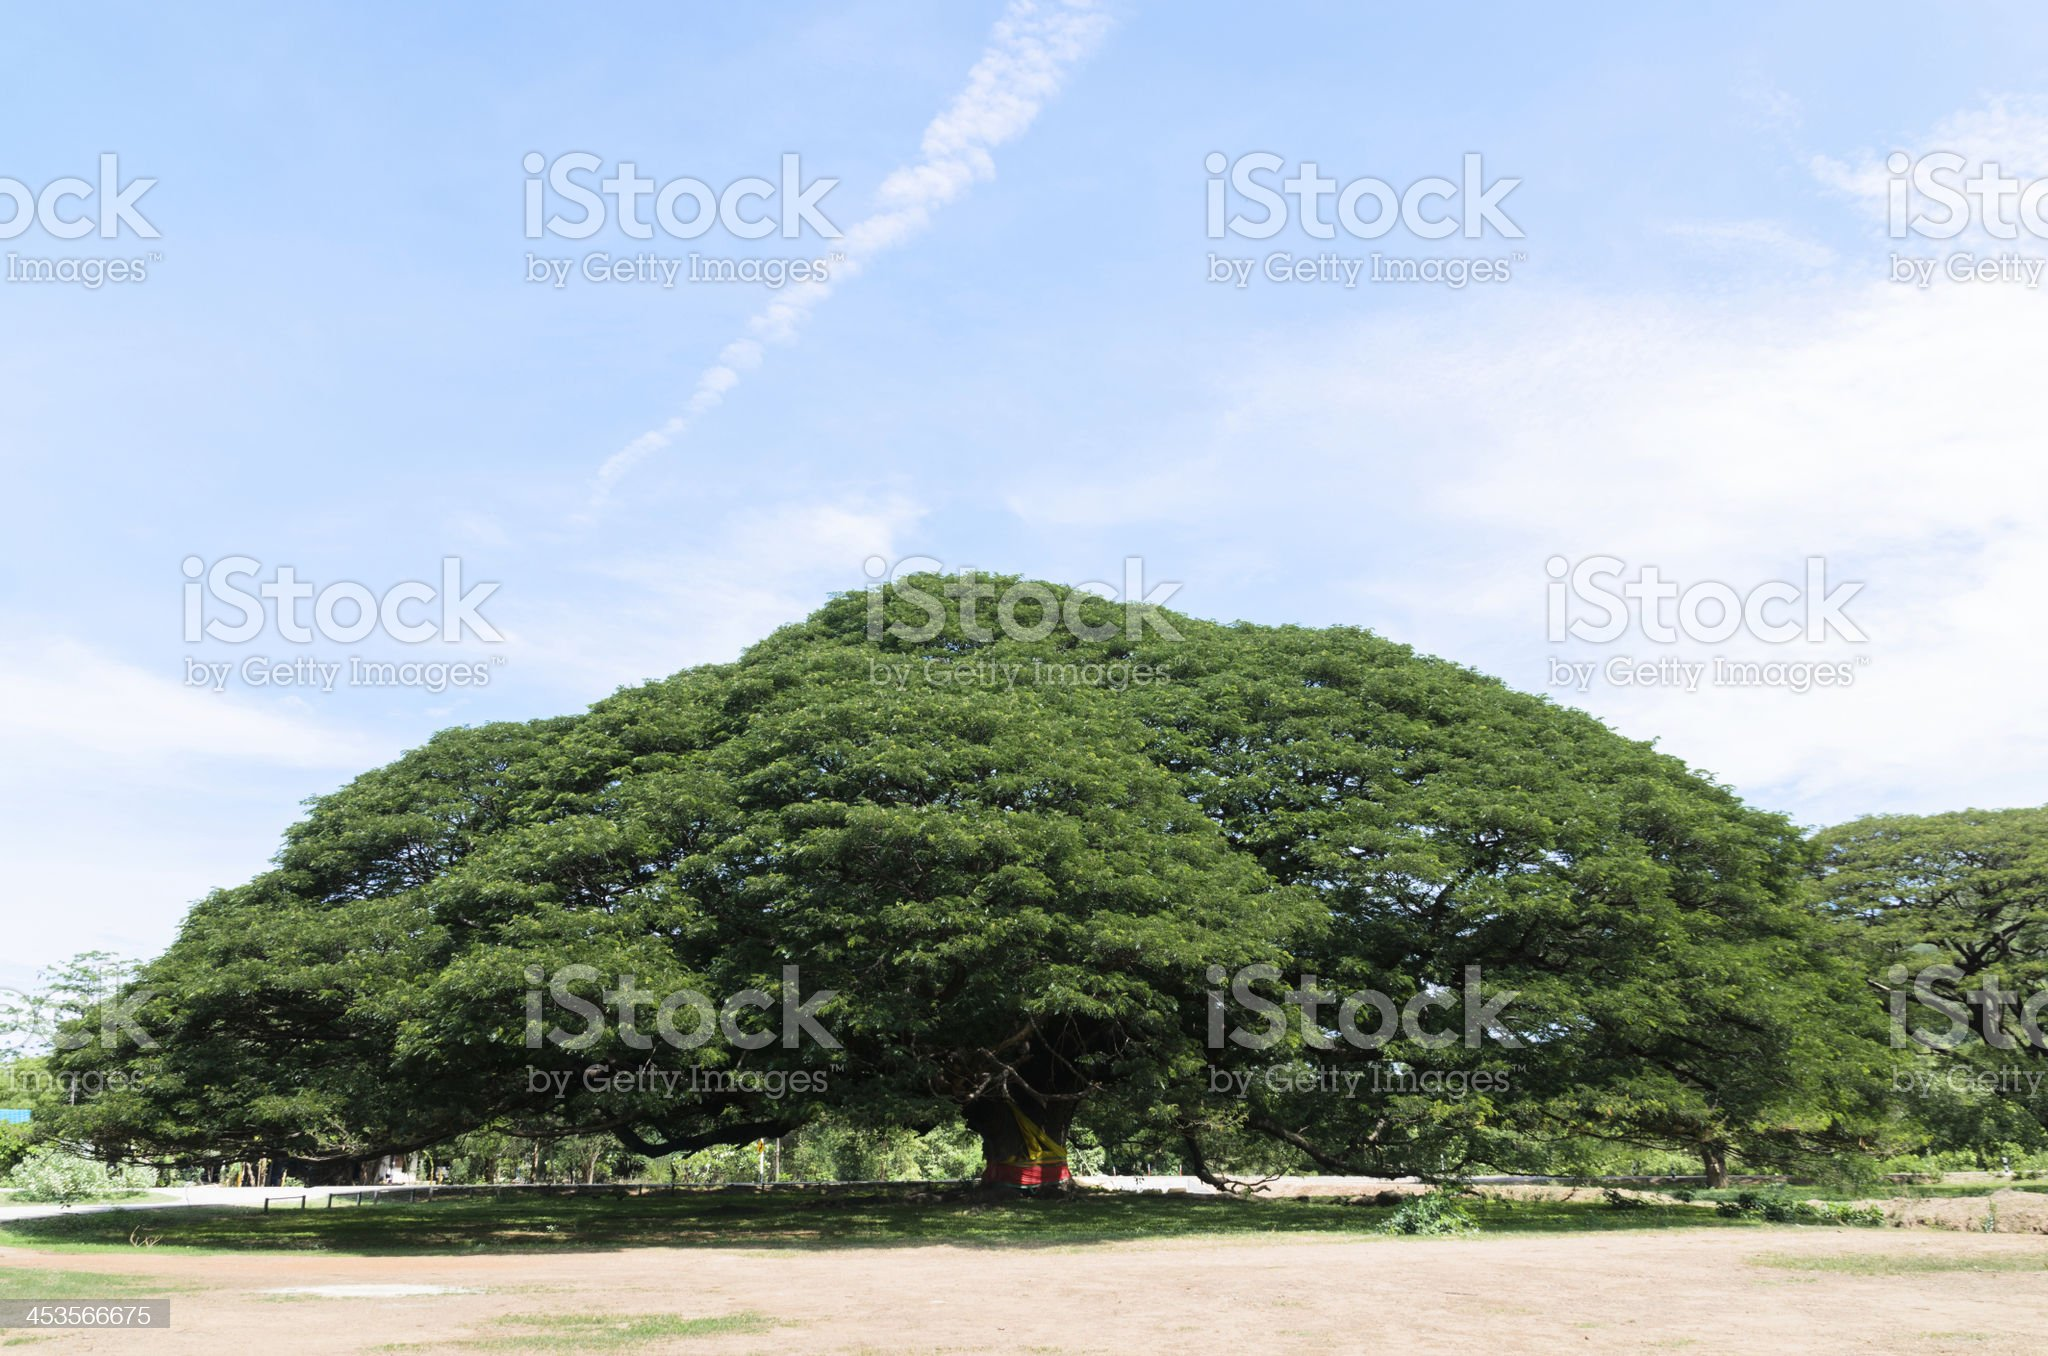 Giant Tree royalty-free stock photo